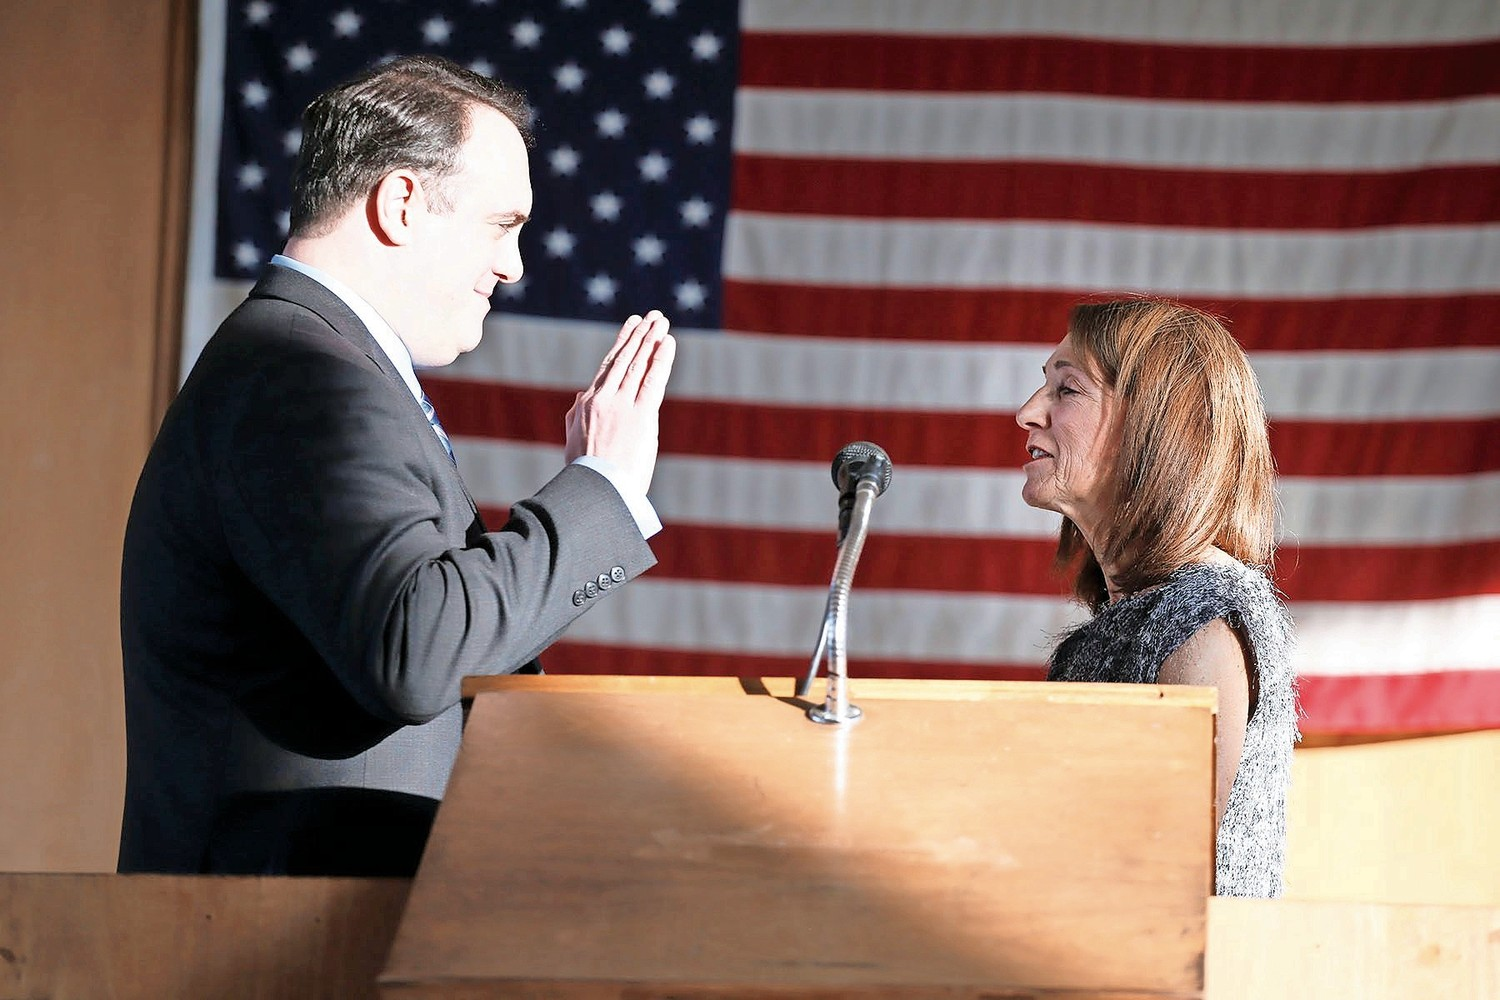 City Councilman Scott Mandel took the oath of office with former Councilwoman Fran Adelson.